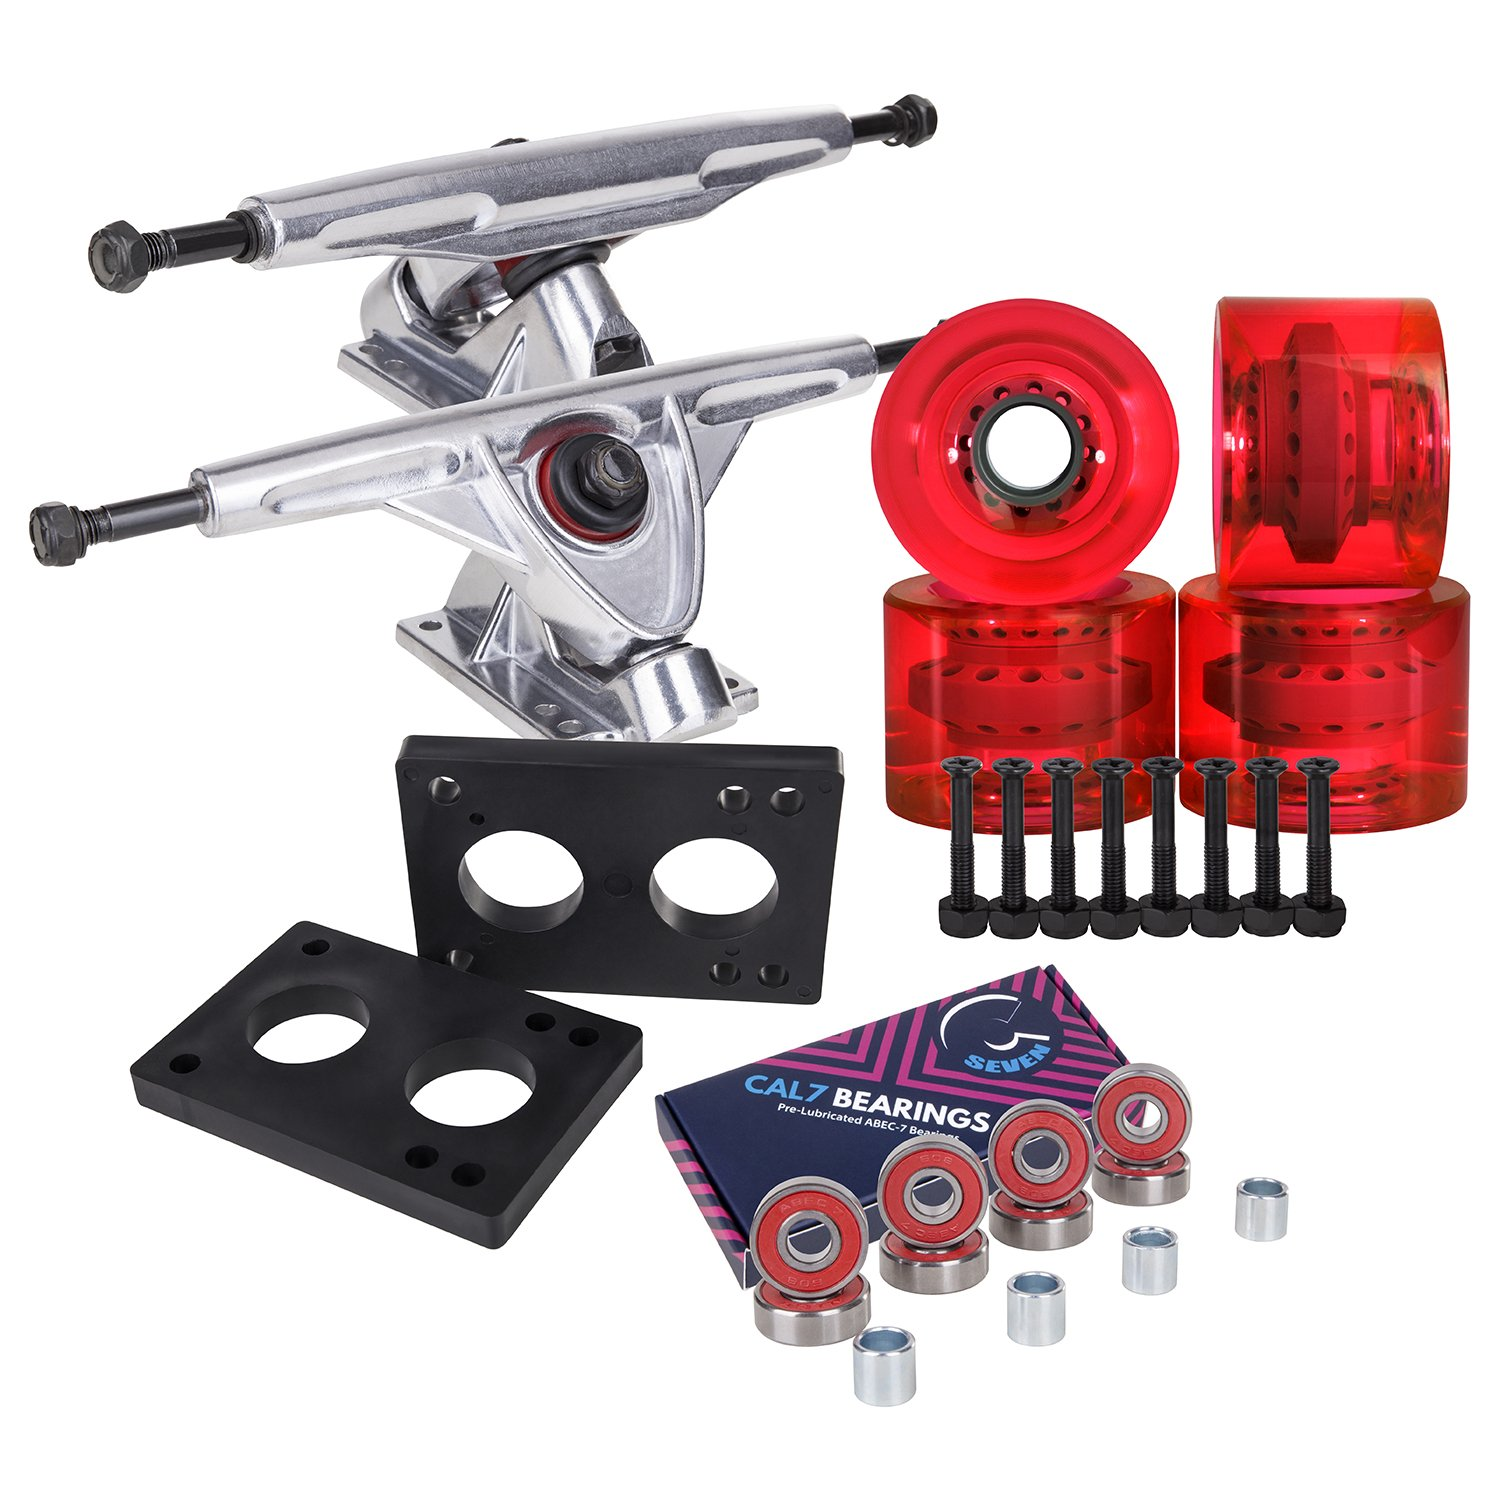 Cal 7 Longboard Skateboard Combo Package with 70mm Wheels & 180mm Lightweight Aluminum Trucks, Bearings Complete Set & Steel Hardware (Silver Truck + Transparent Red Wheels) by Cal 7